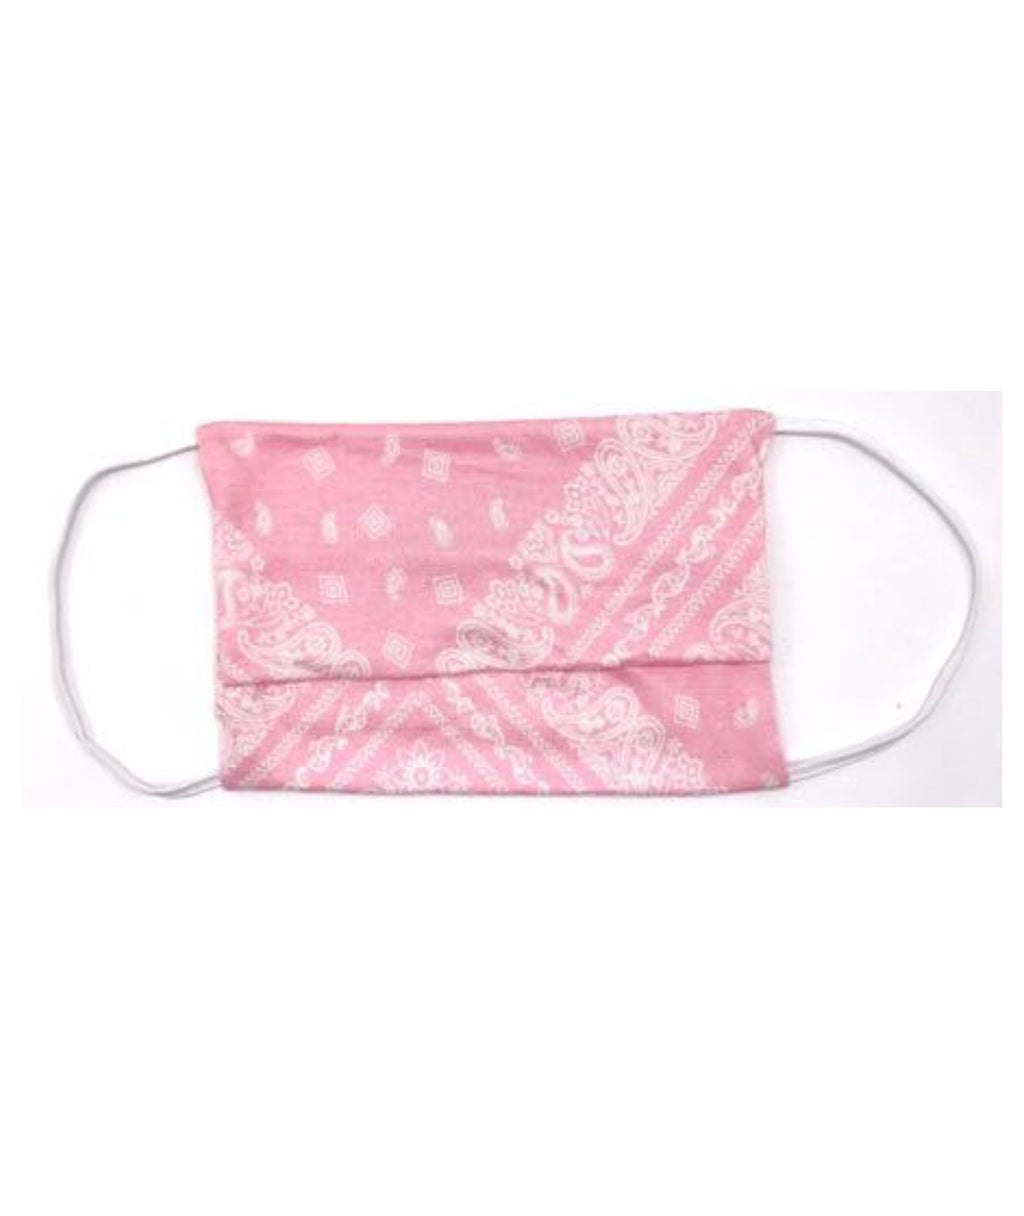 American Mask Project Adult & Kids Pink Bandana 2 Pack - IN-STOCK